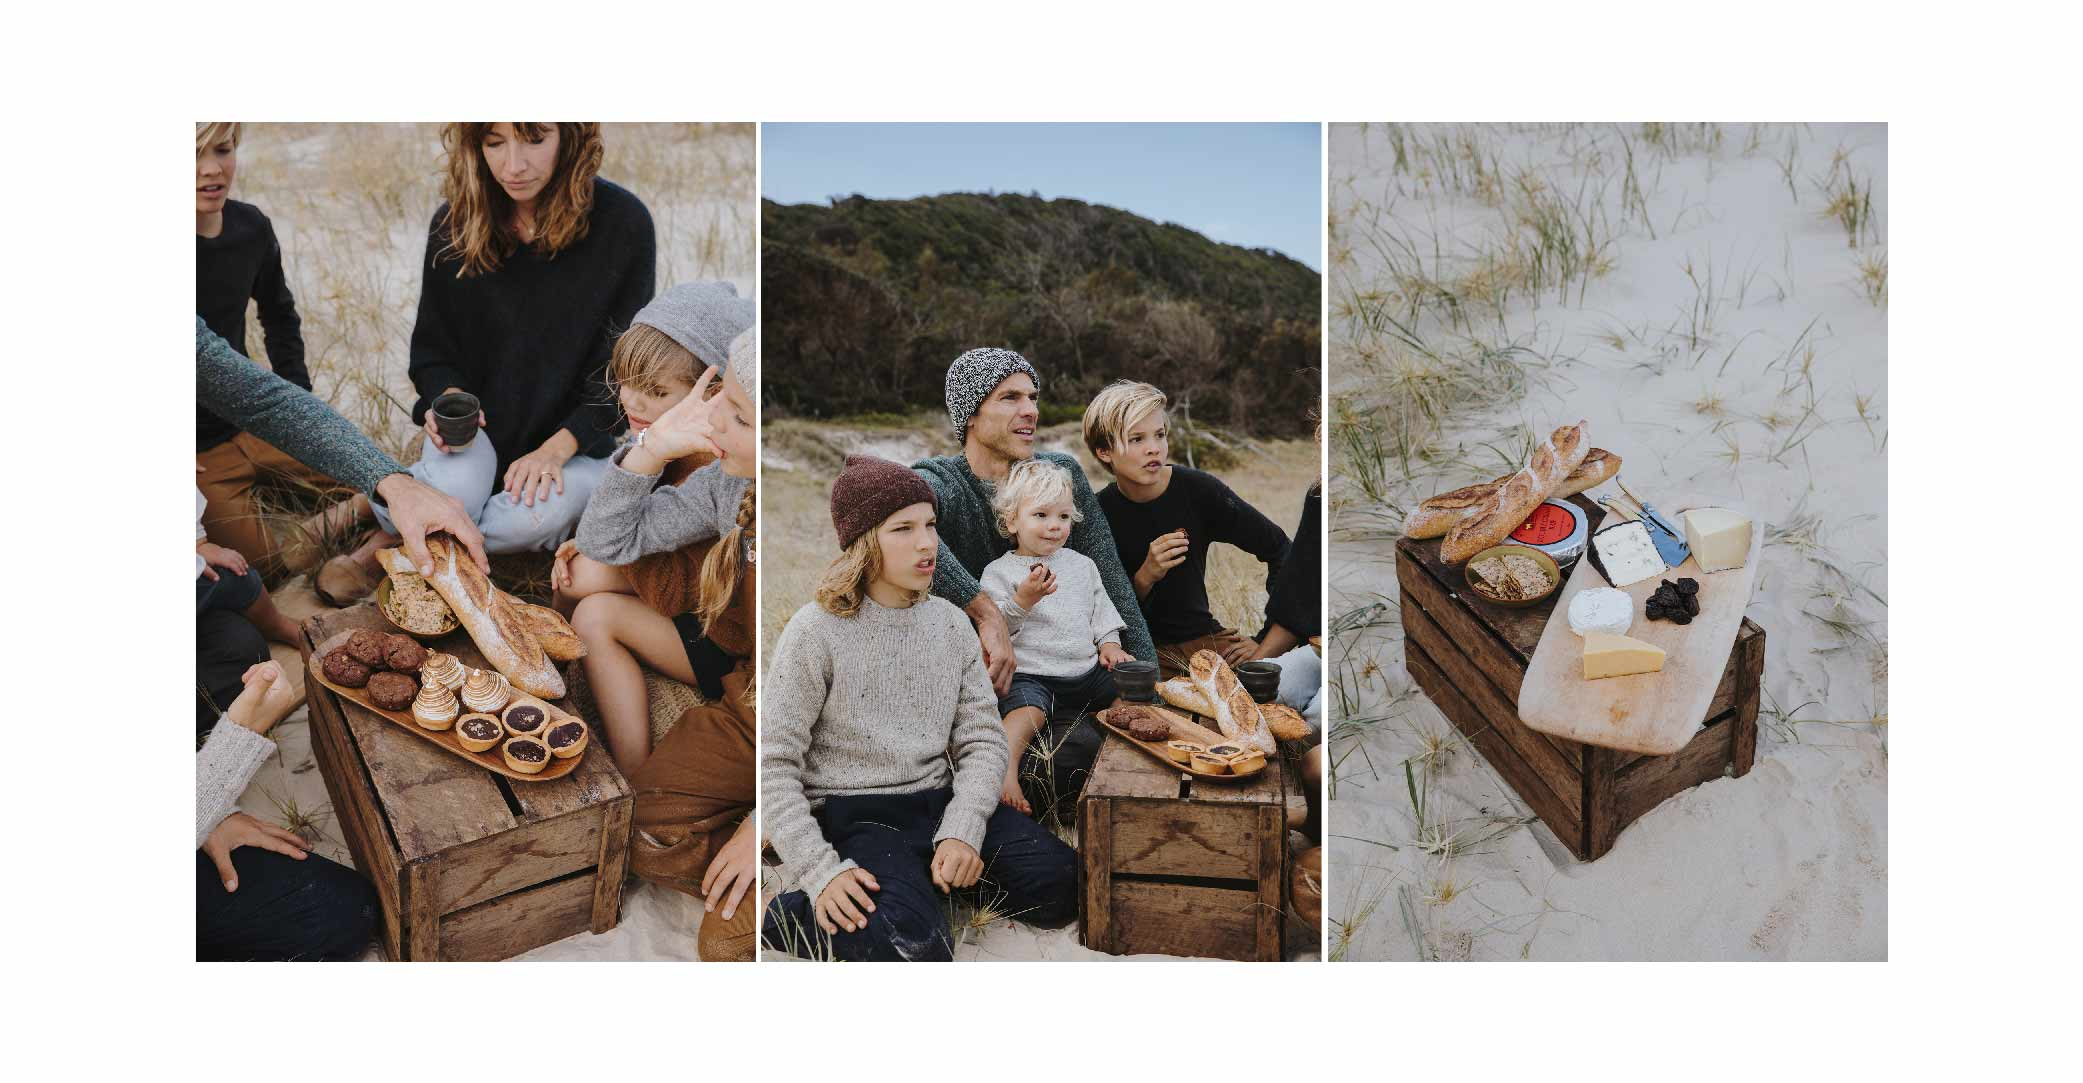 Kids Fall Winter'18 The Simple Life beach picnic Bellerose